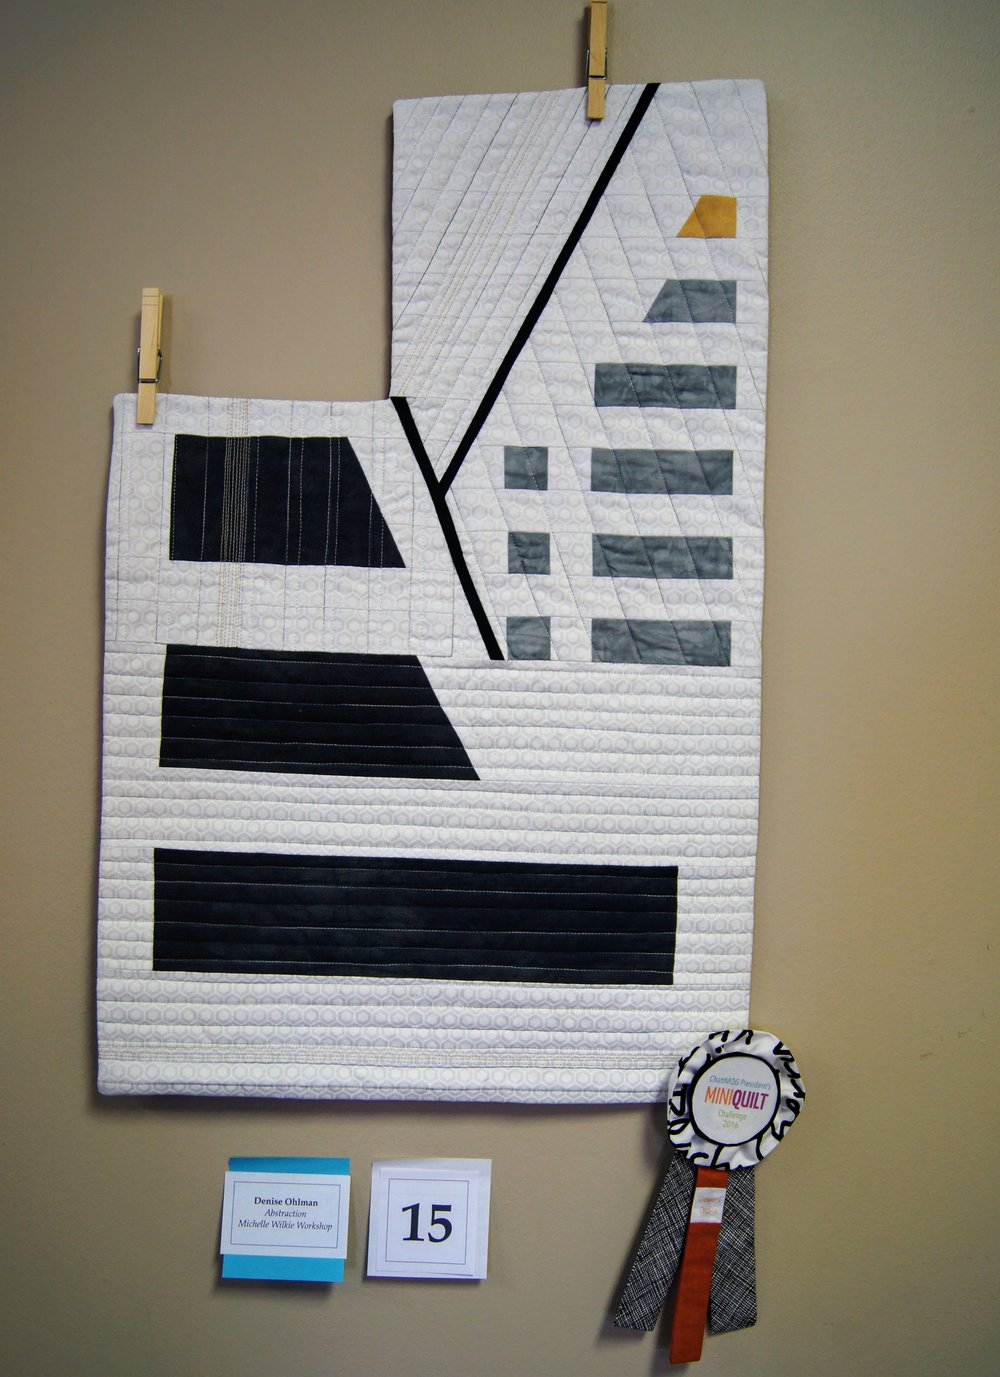 3rd place quilt by Denise Ohlman